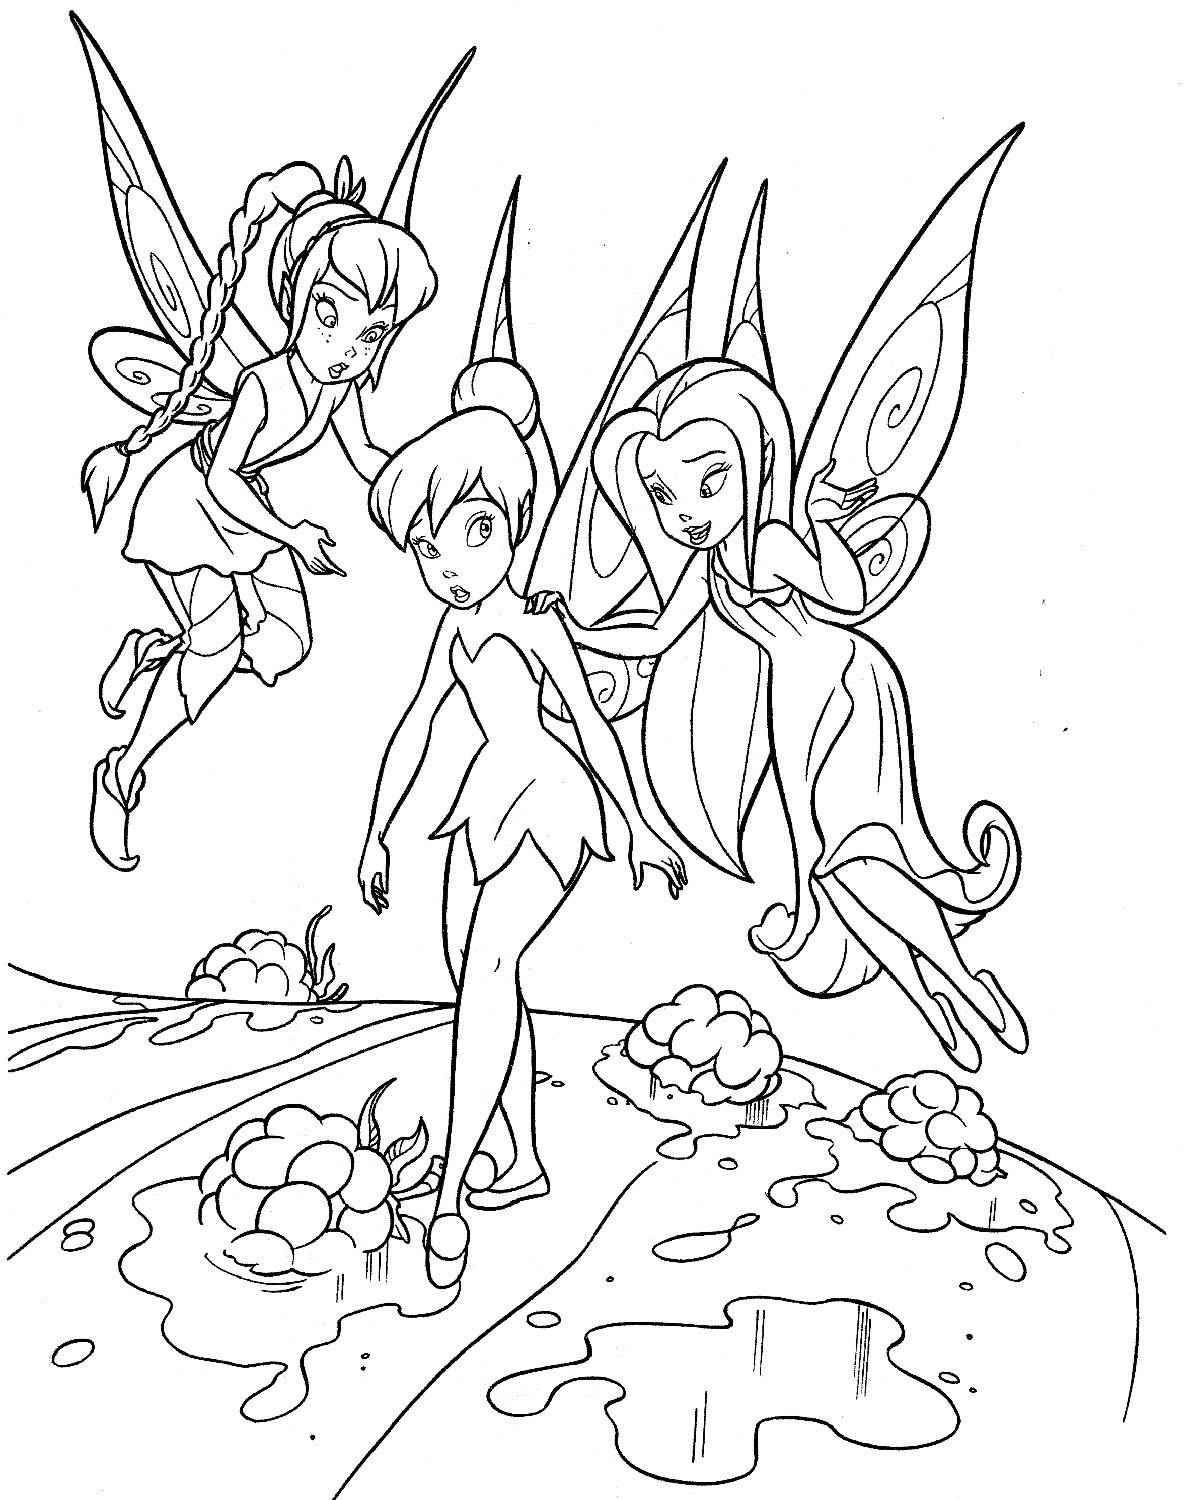 Coloring Pages Tinkerbell Coloring Pages To Print tinkerbell coloring pages 22 kids download print